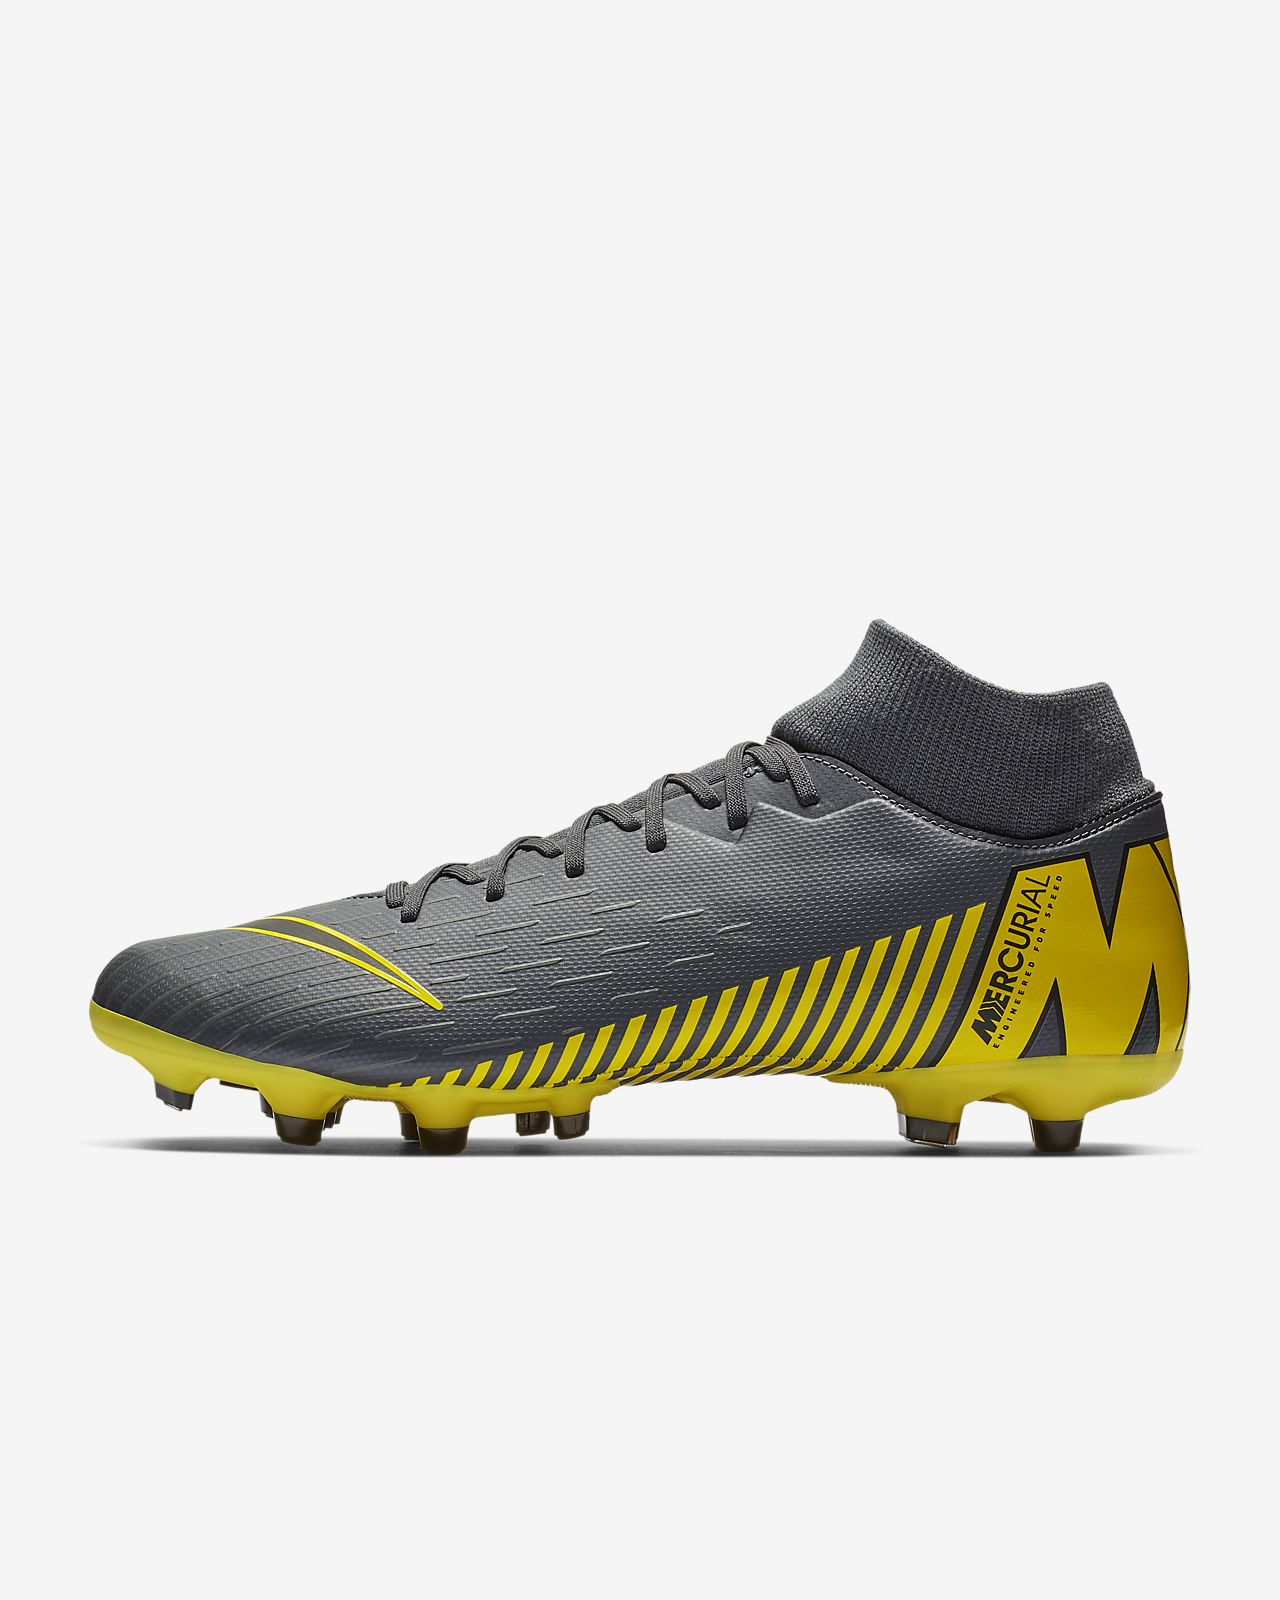 Nike Mercurial Superfly 6 Academy Game Over MG  Multi-Ground Soccer Cleat